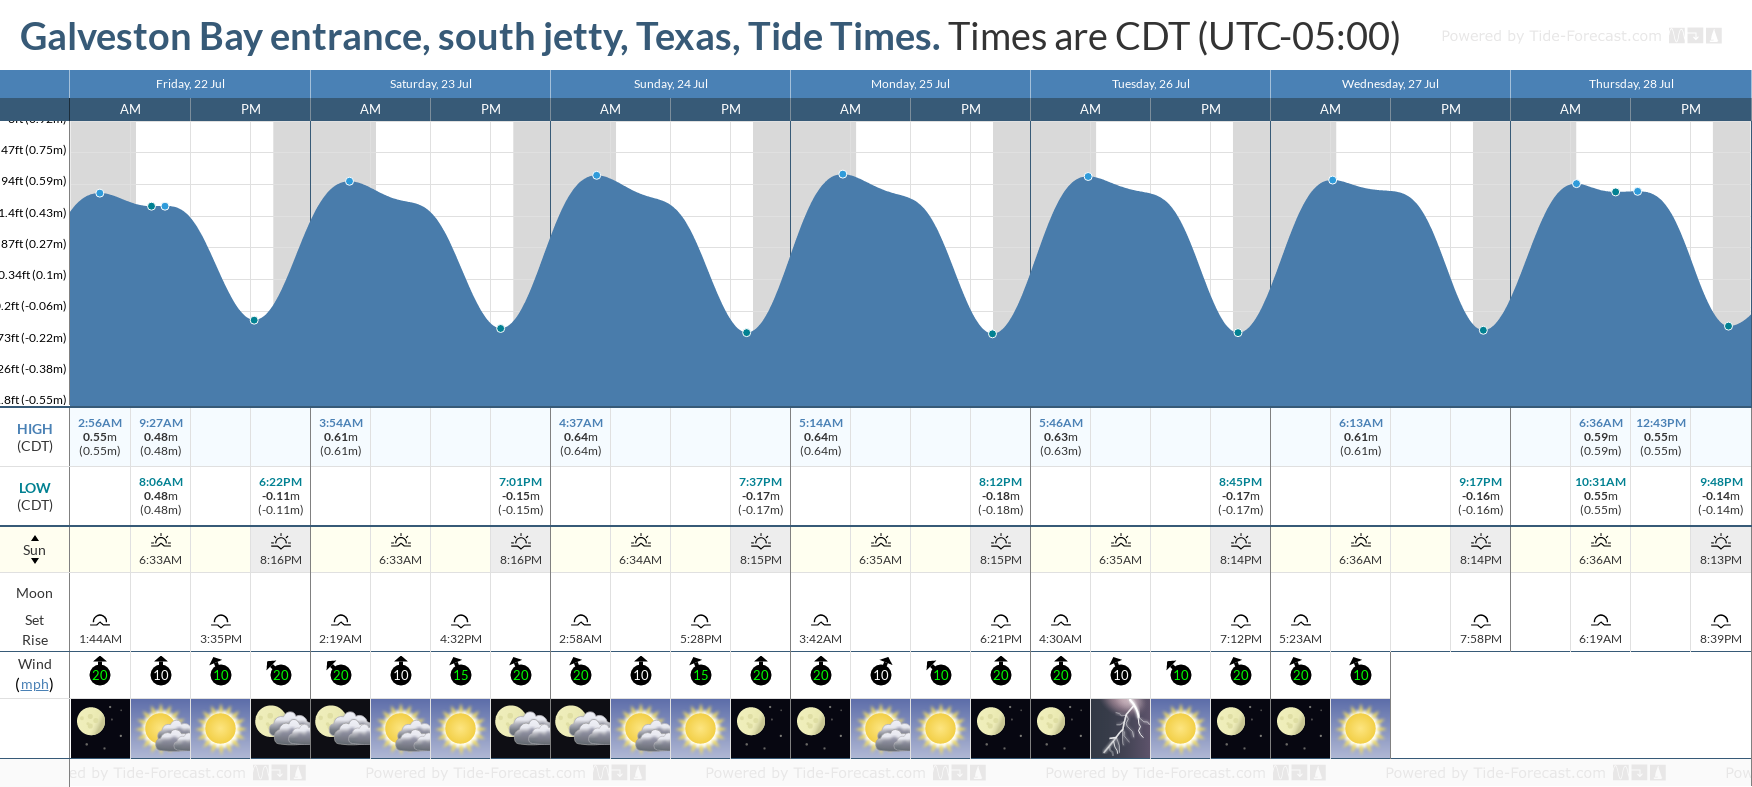 Galveston Bay entrance, south jetty, Texas Tide Chart including high and low tide tide times for the next 7 days